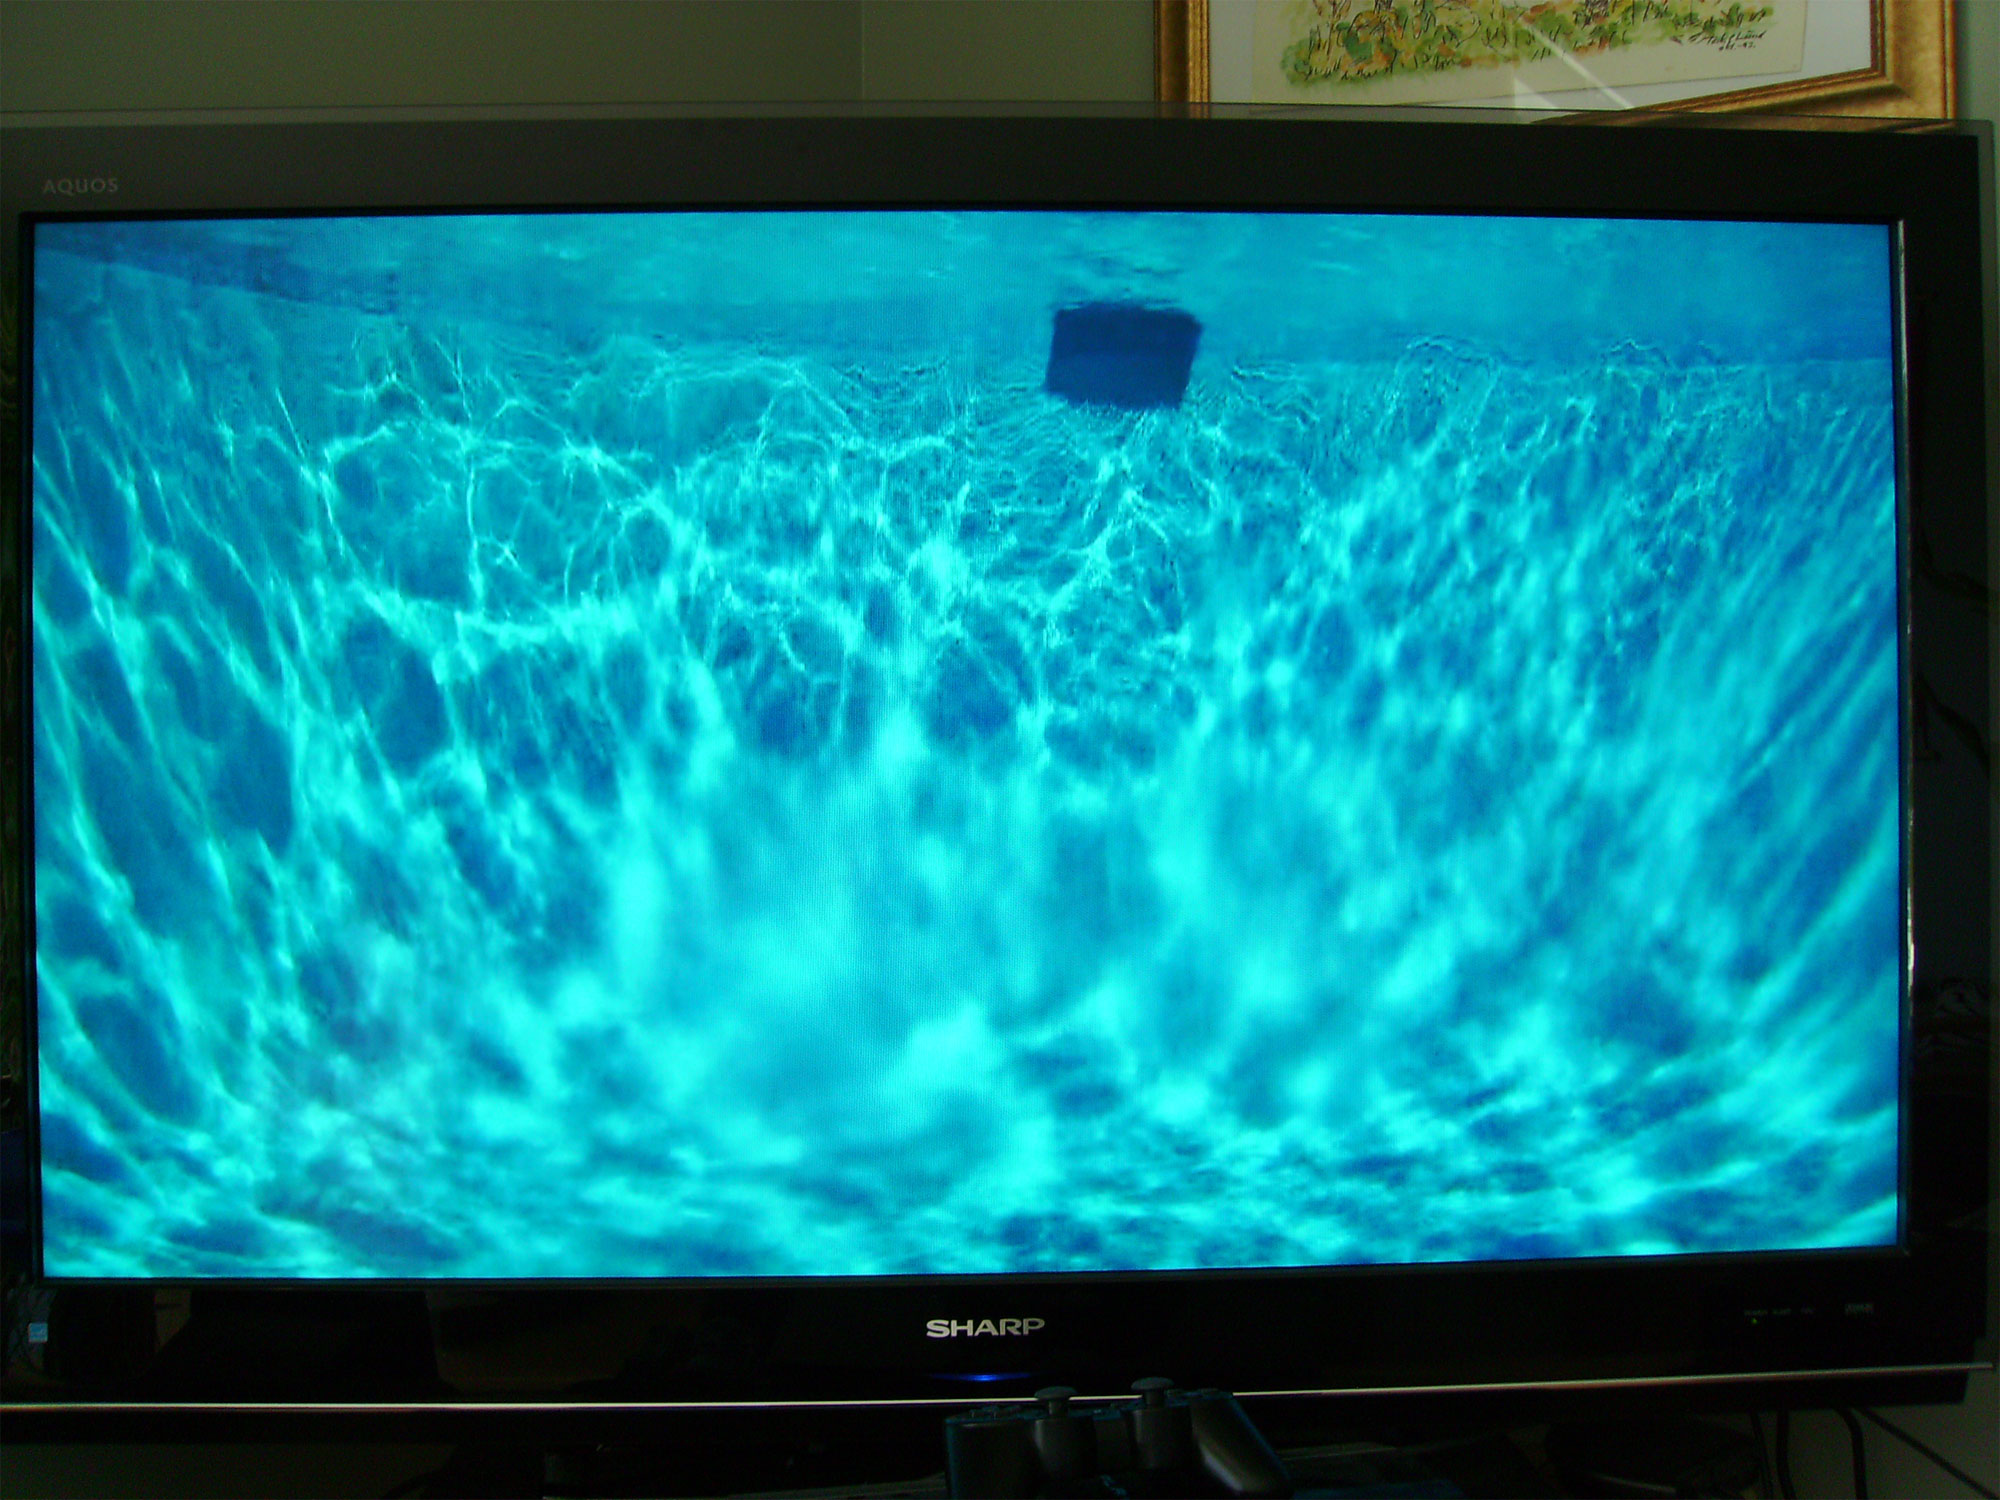 This is a low resolution photo from inside the pool showing the inner ocean of energy in the crystal clear pool water